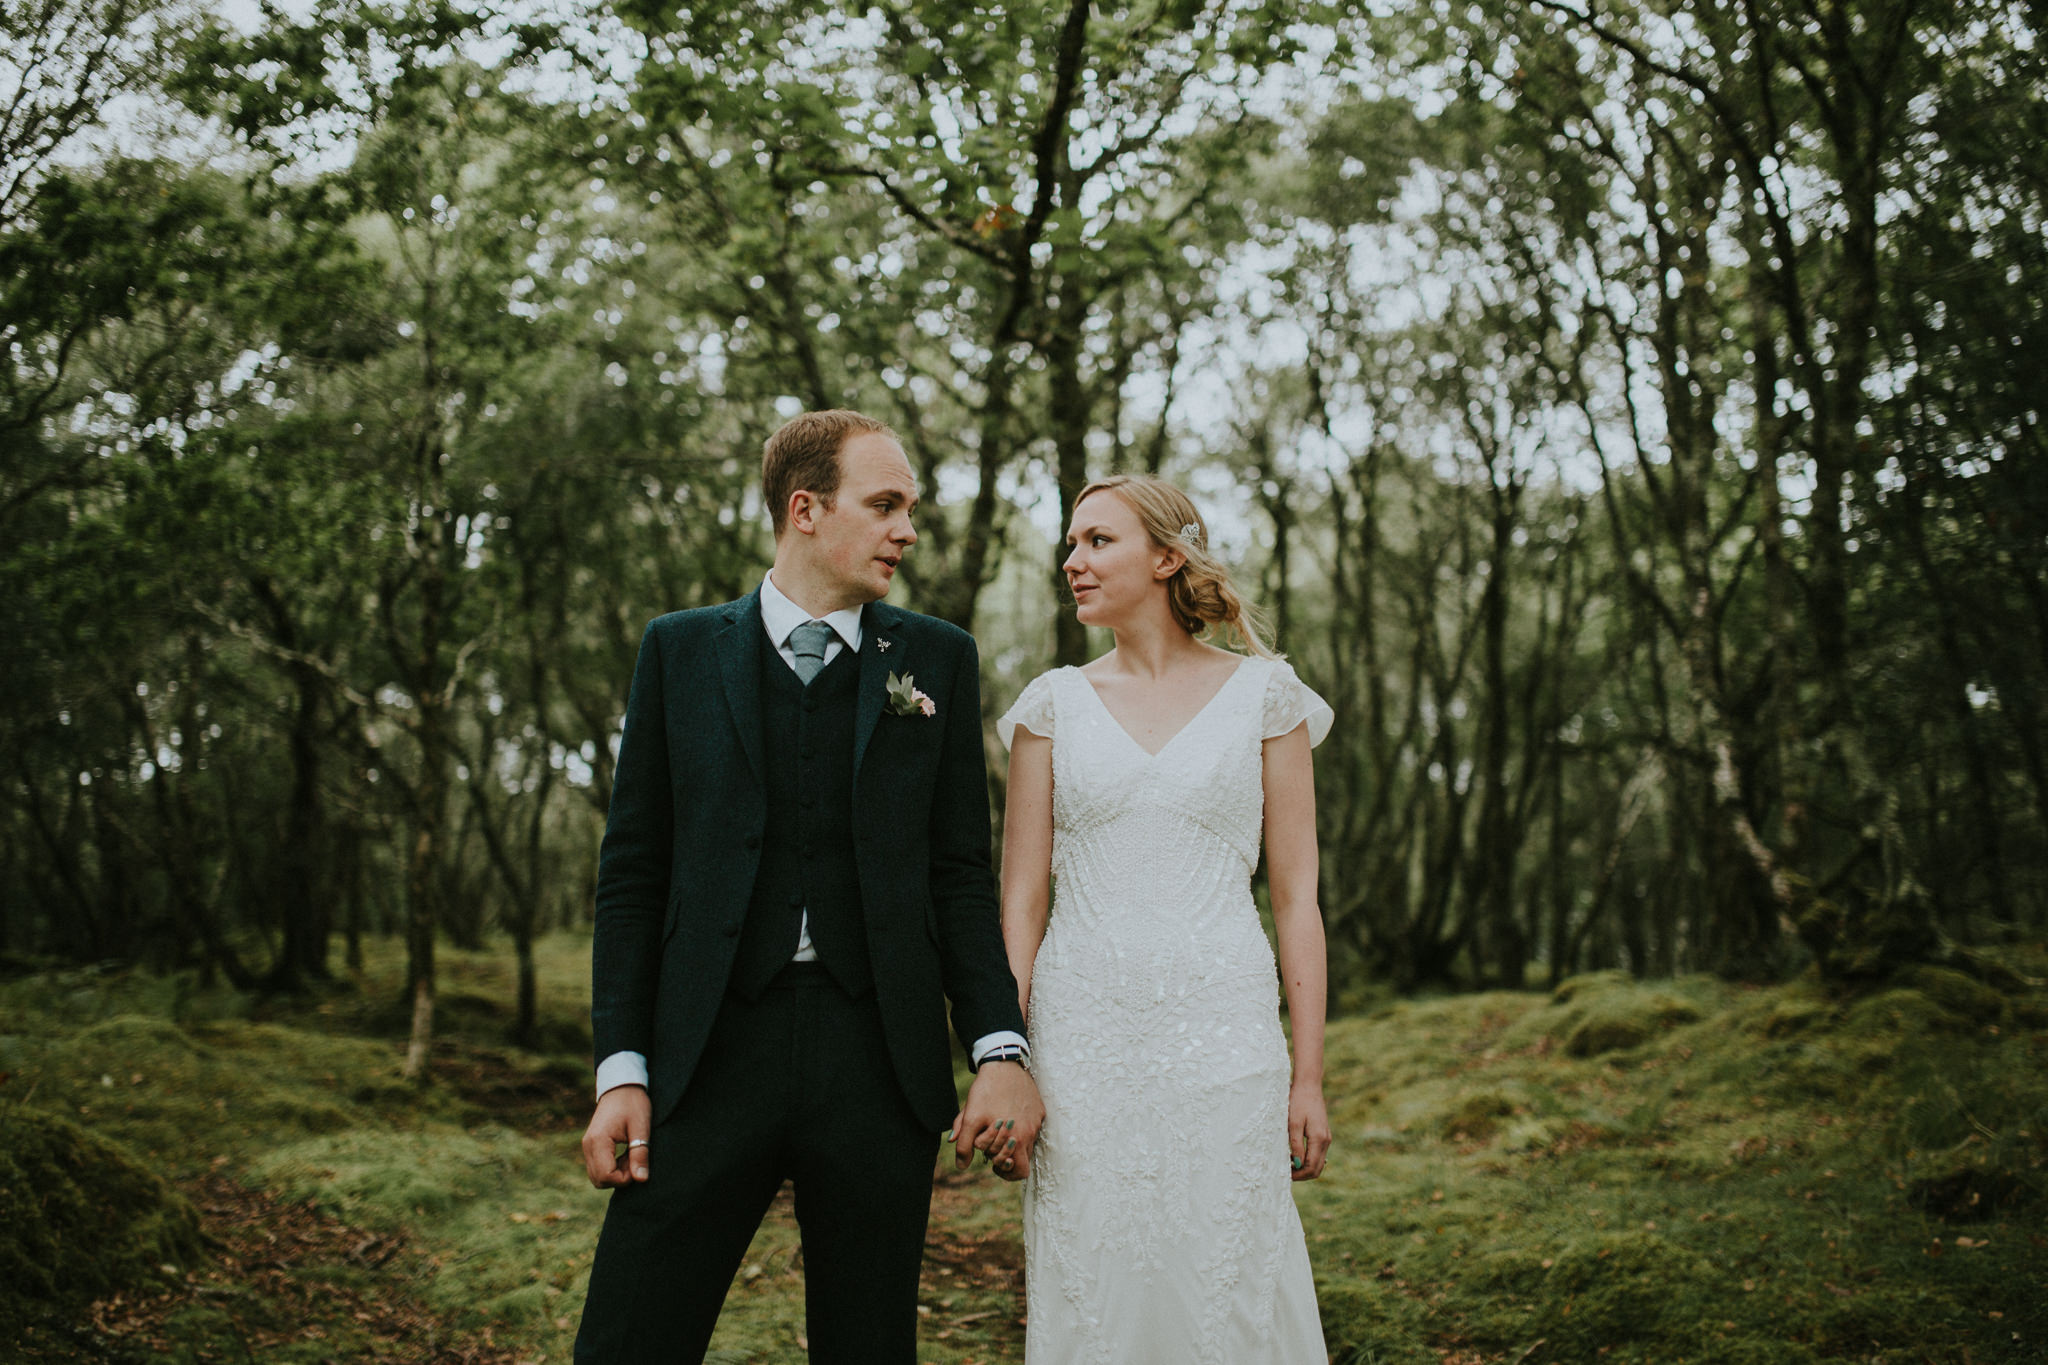 The wedding couple is holding hands and standing in the middle of a forest.